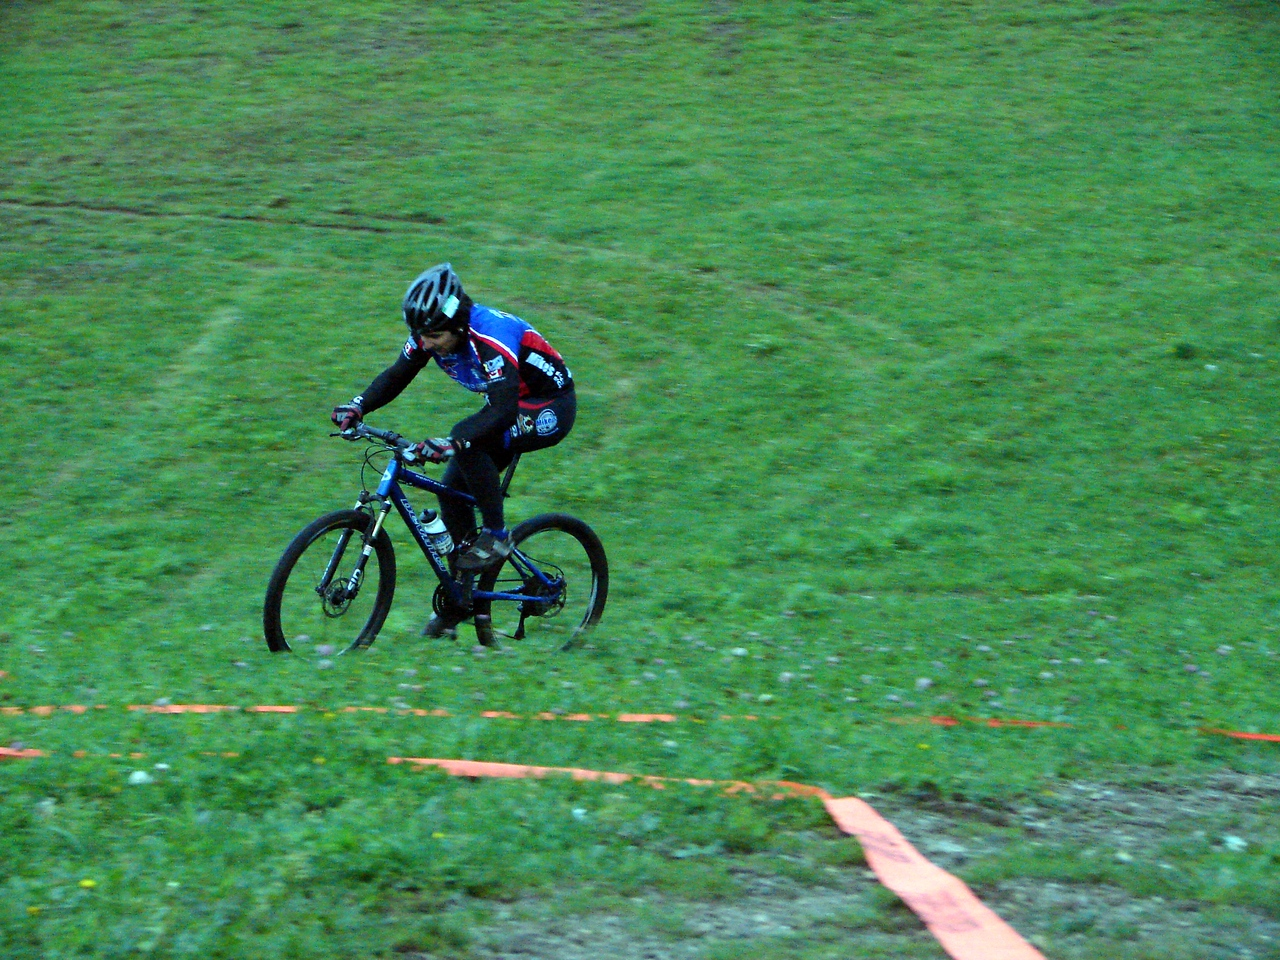 Pablo doing the normal run section mtb style.